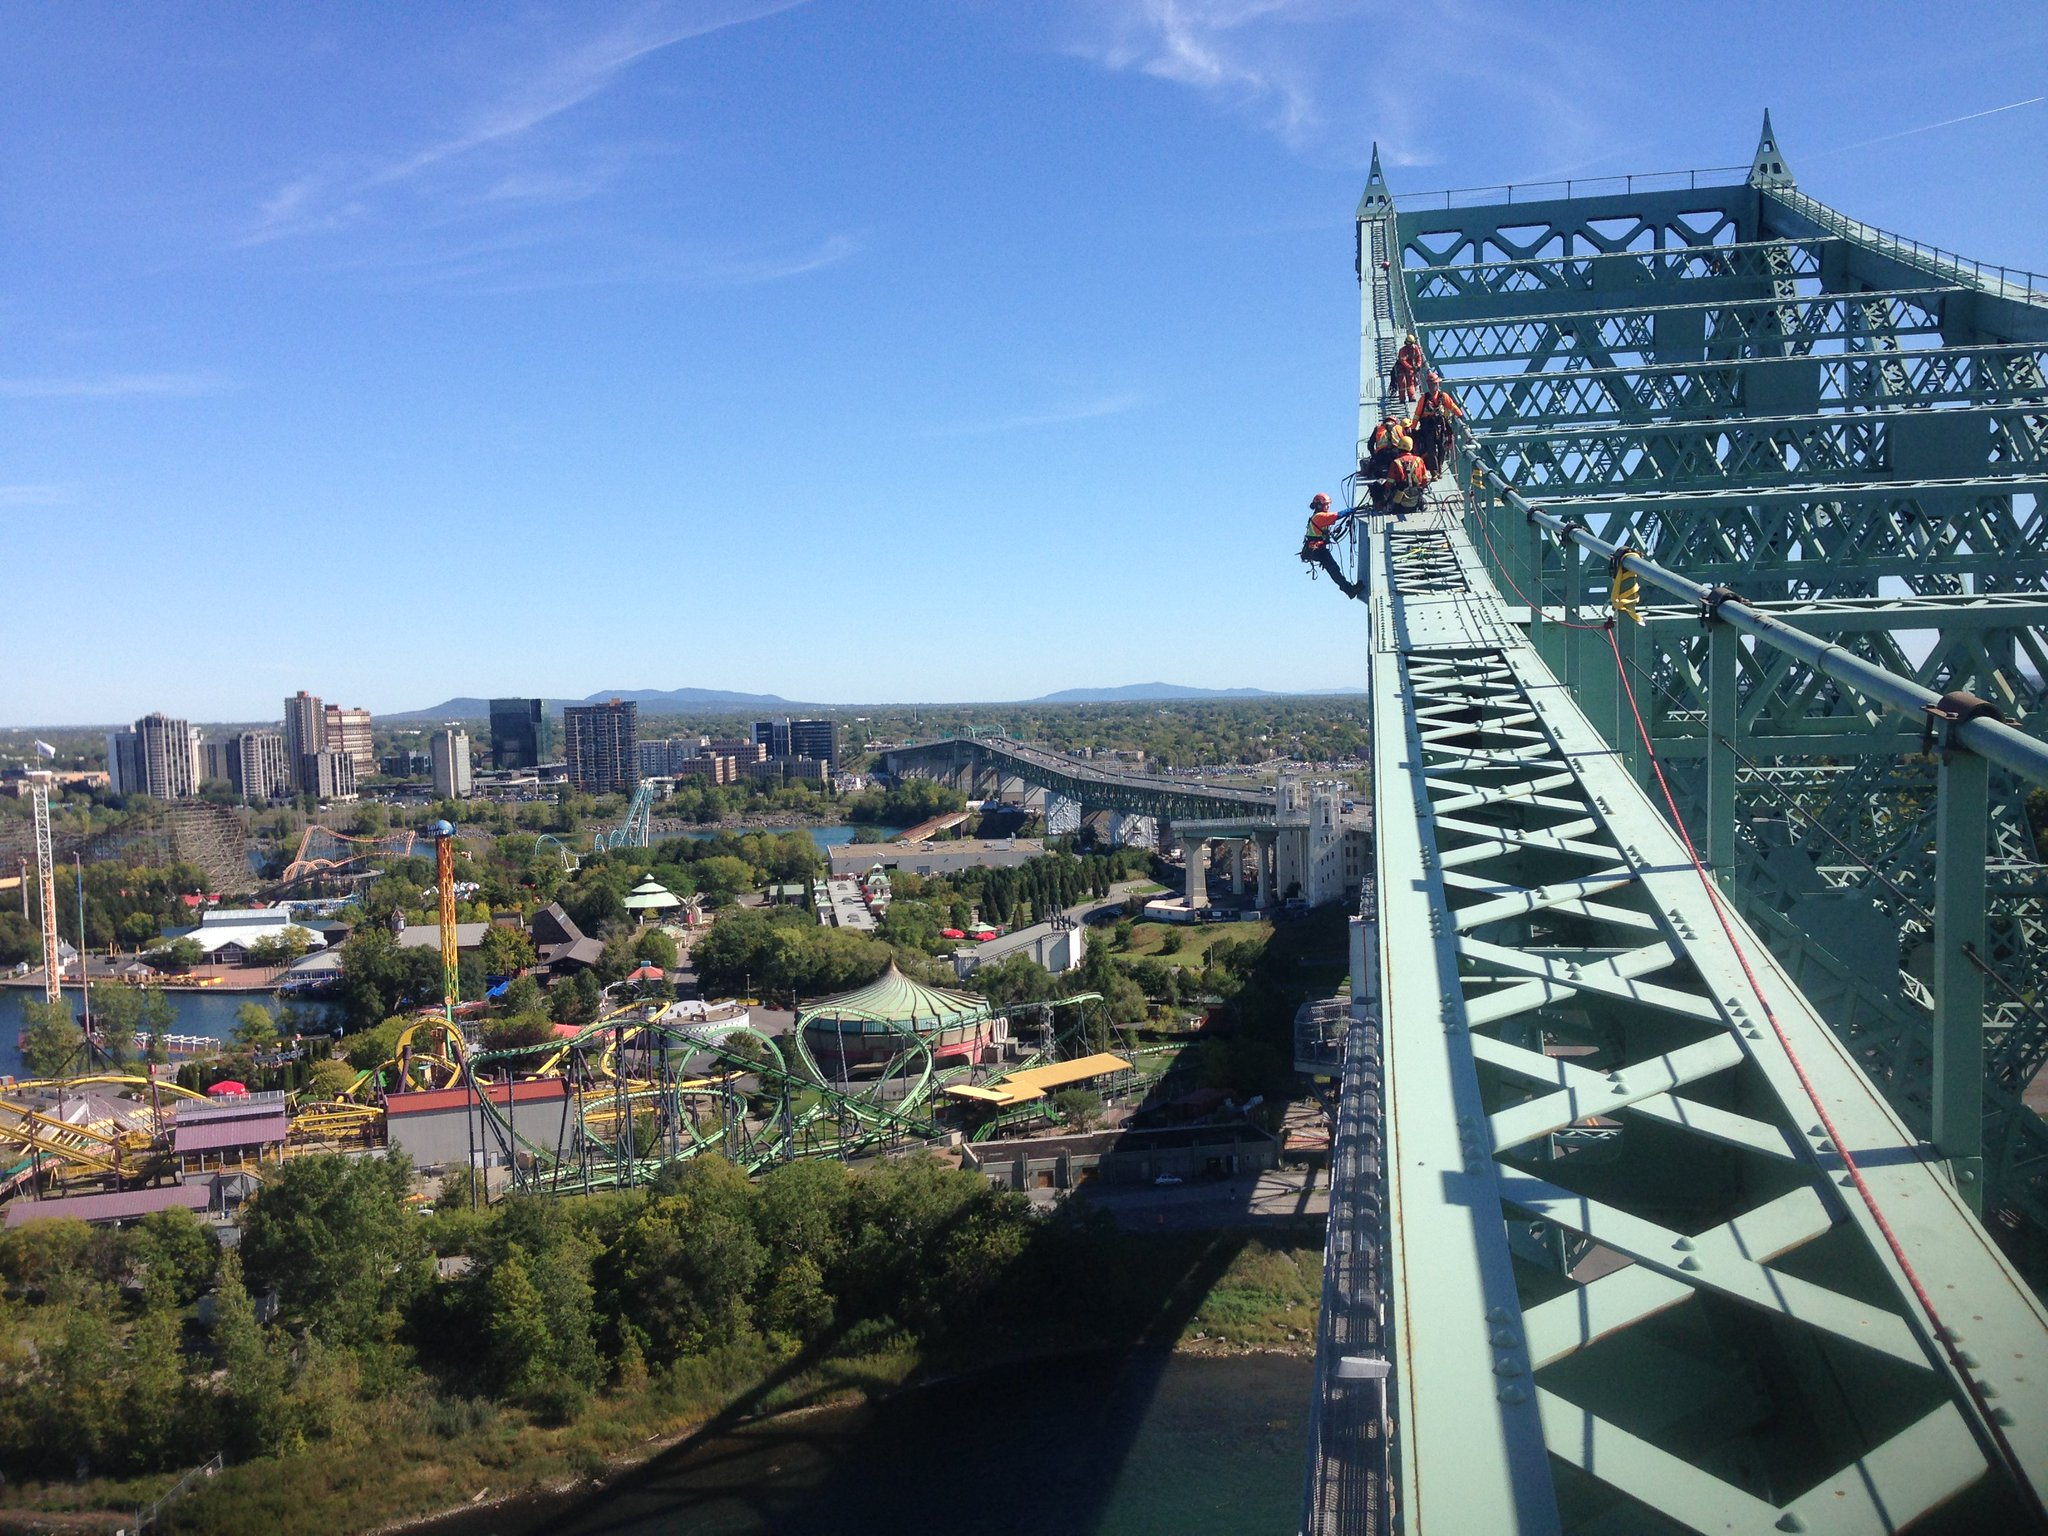 I spy @TetraTech engineers completing a structural inspection of the @pontJCBridge! #EWBUSA https://t.co/XtknGt7LMH #EWeek2017 https://t.co/D0hD0y7GCr